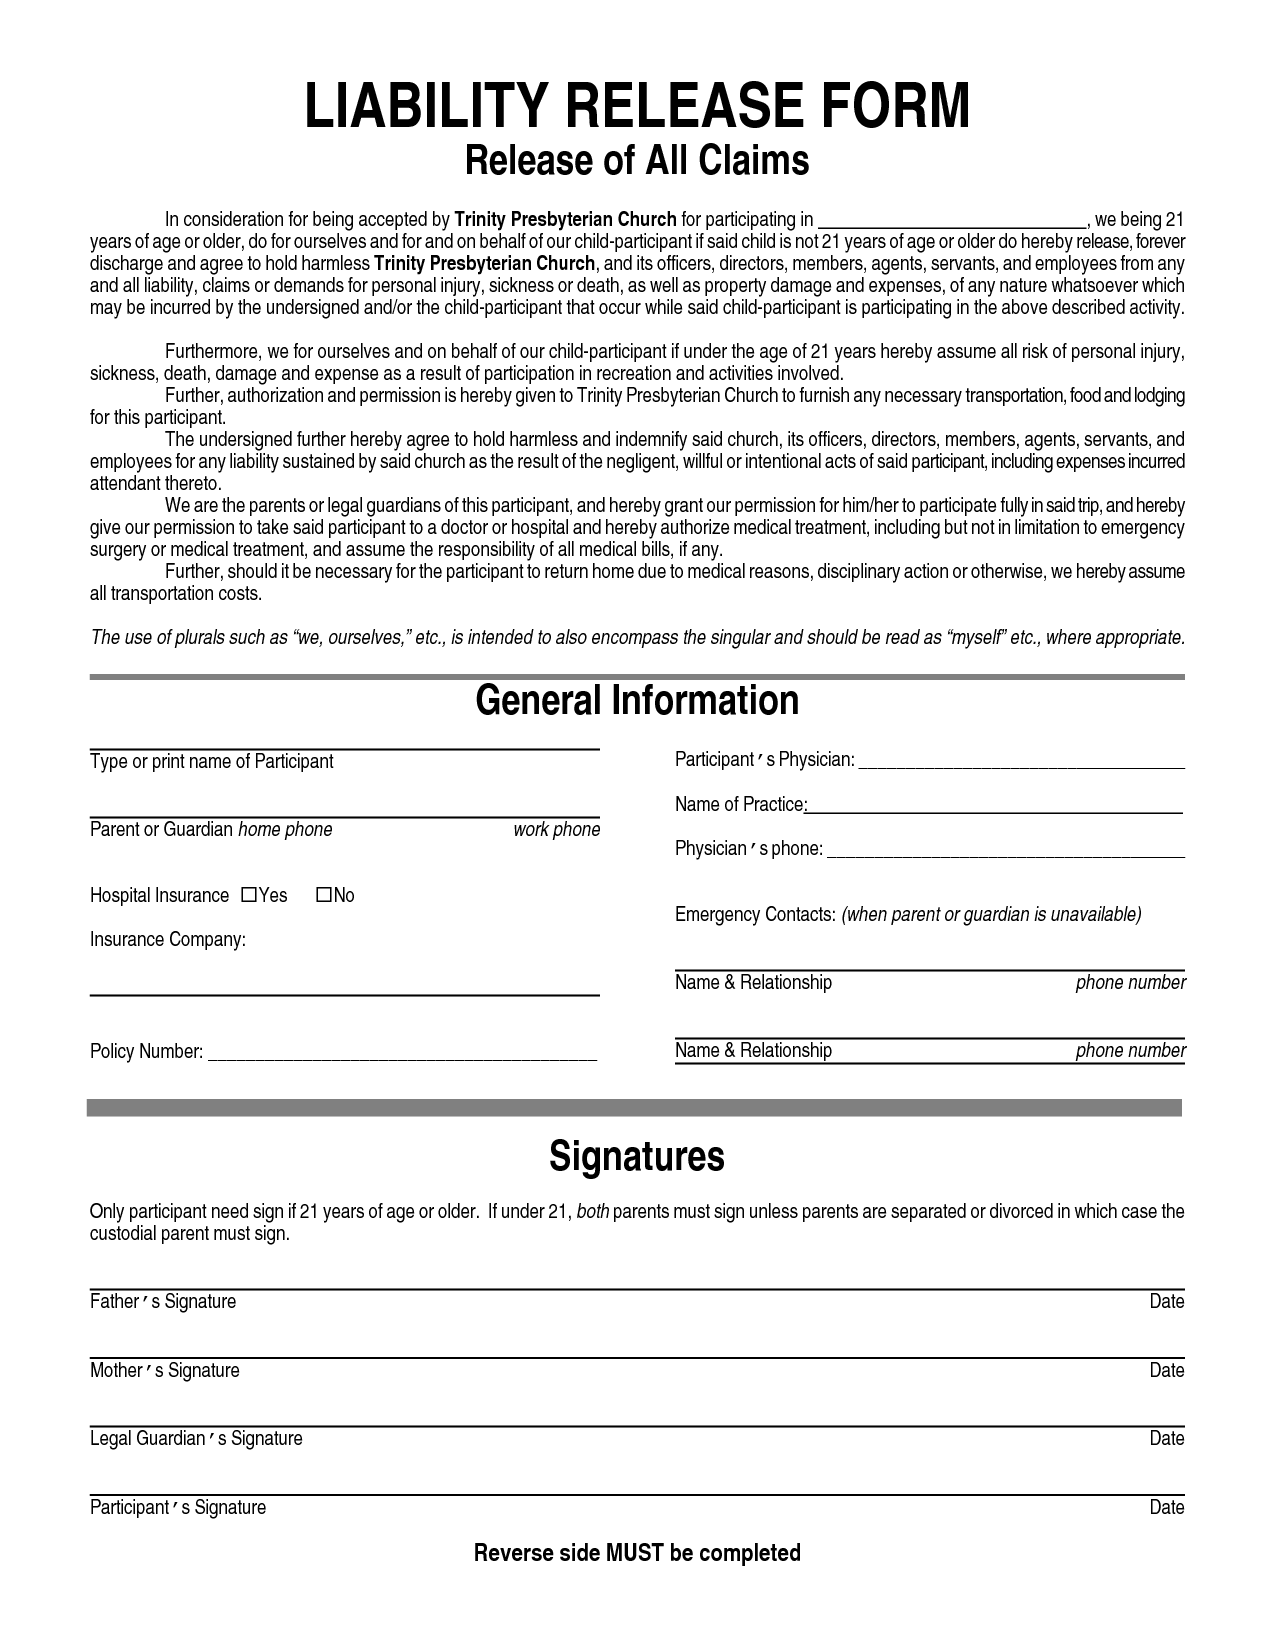 Product Liability Template Invitation Templates liability – Free Liability Release Form